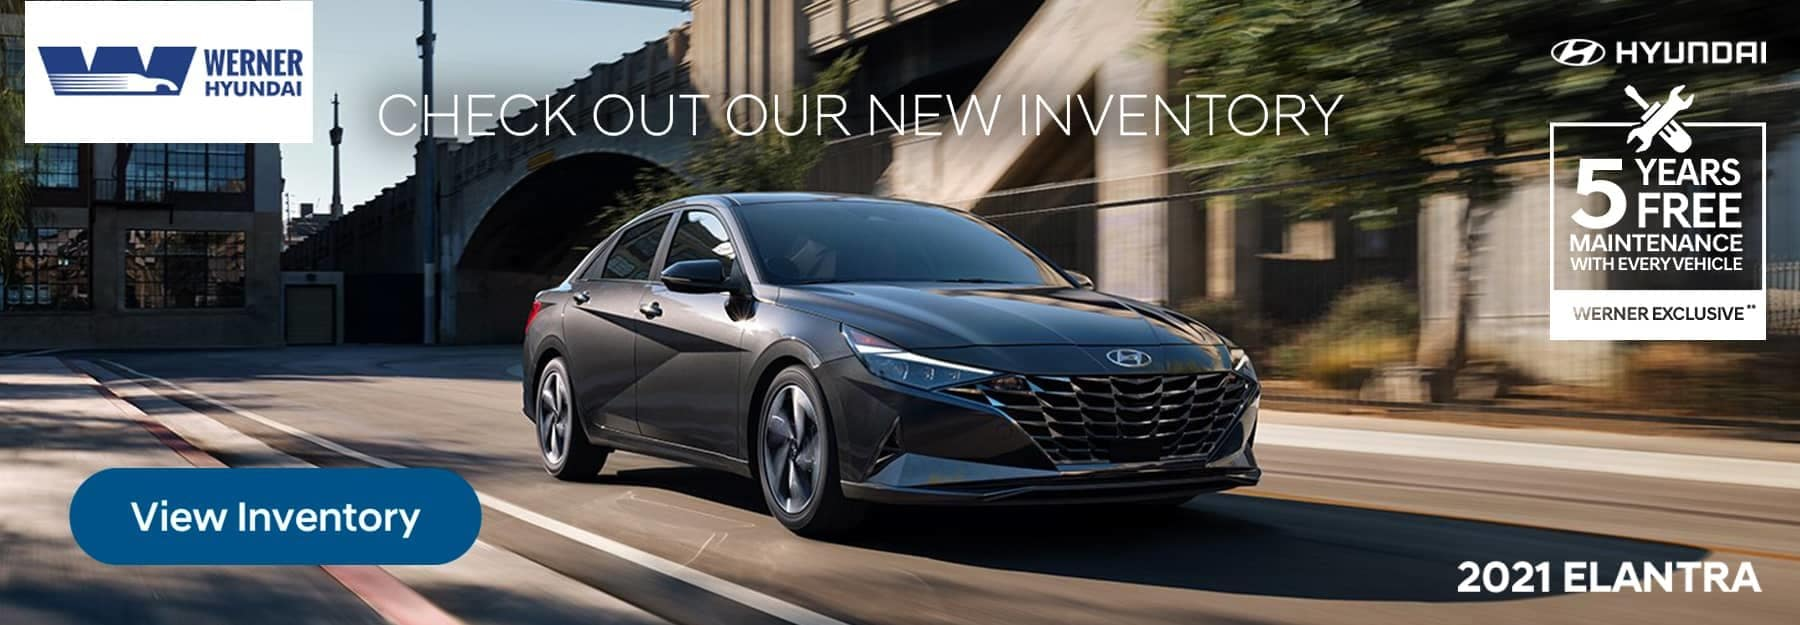 2021 Hyundai Elantra - Check Out Our New Inventory - 5 years free maintenance with every vehicle - Werner Exclusive